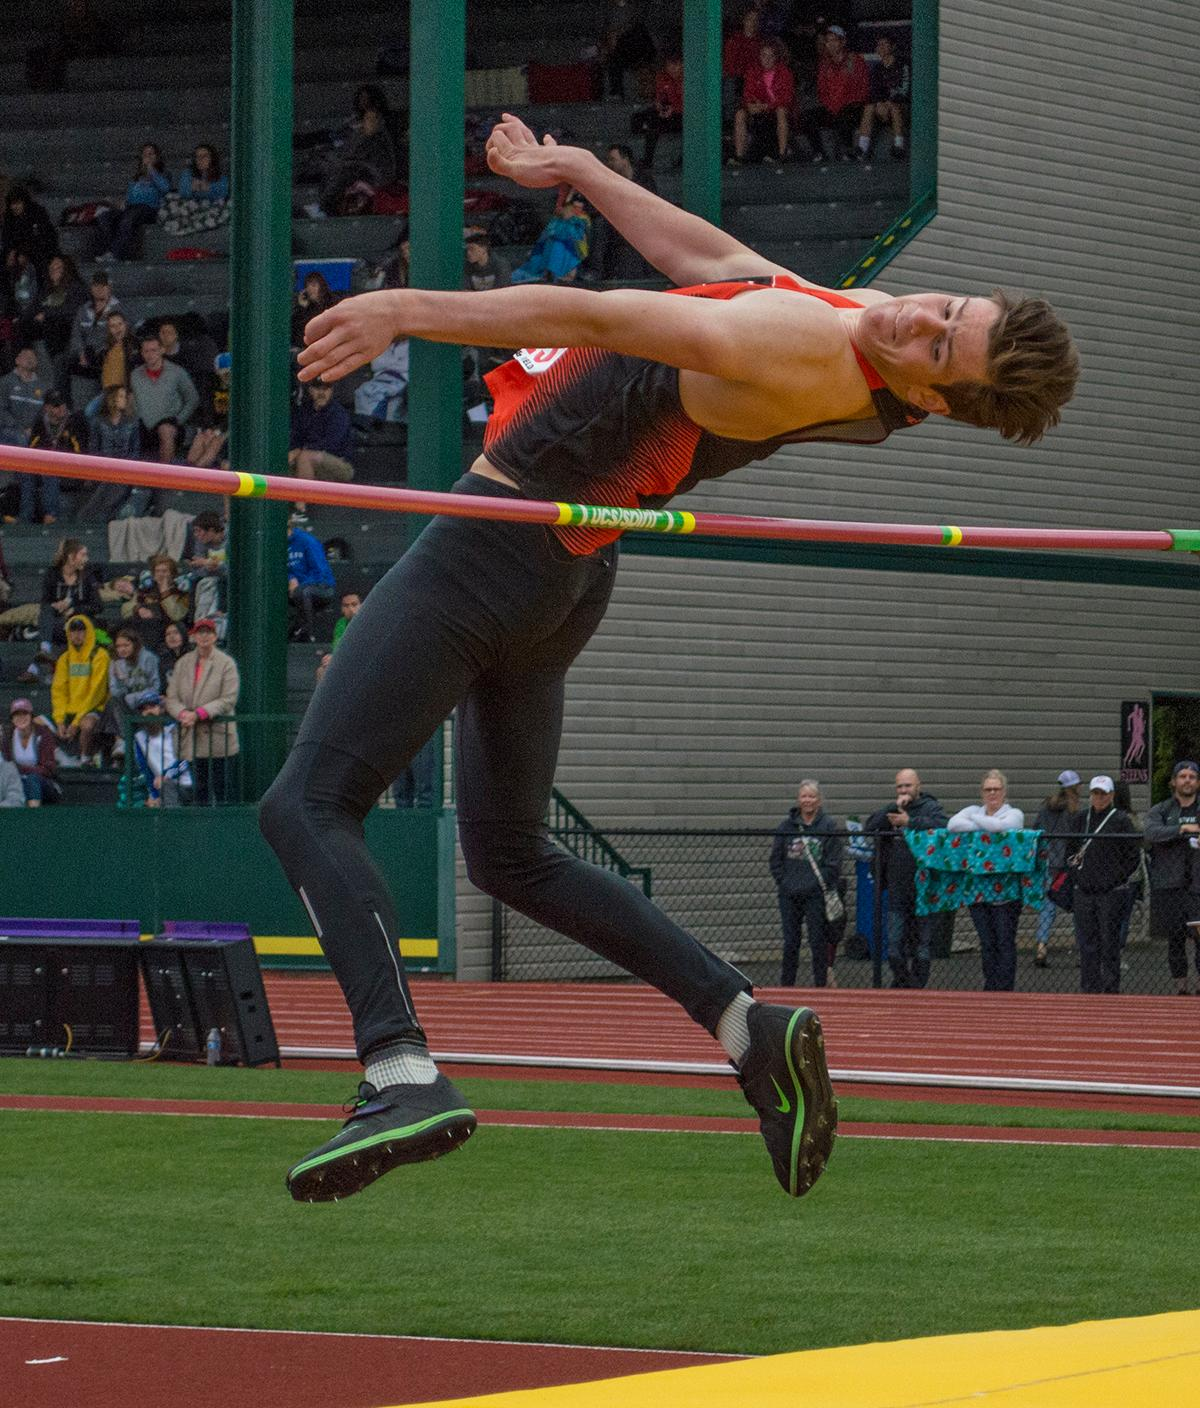 Beau Sheeran of Beaverton High School glides through the air at a height of 6-07.00, winning the 6A Boys High Jump event at the OSAA Track and Field Championships at Hayward Field. Photo by Emily Gonzalez, Oregon News Lab.